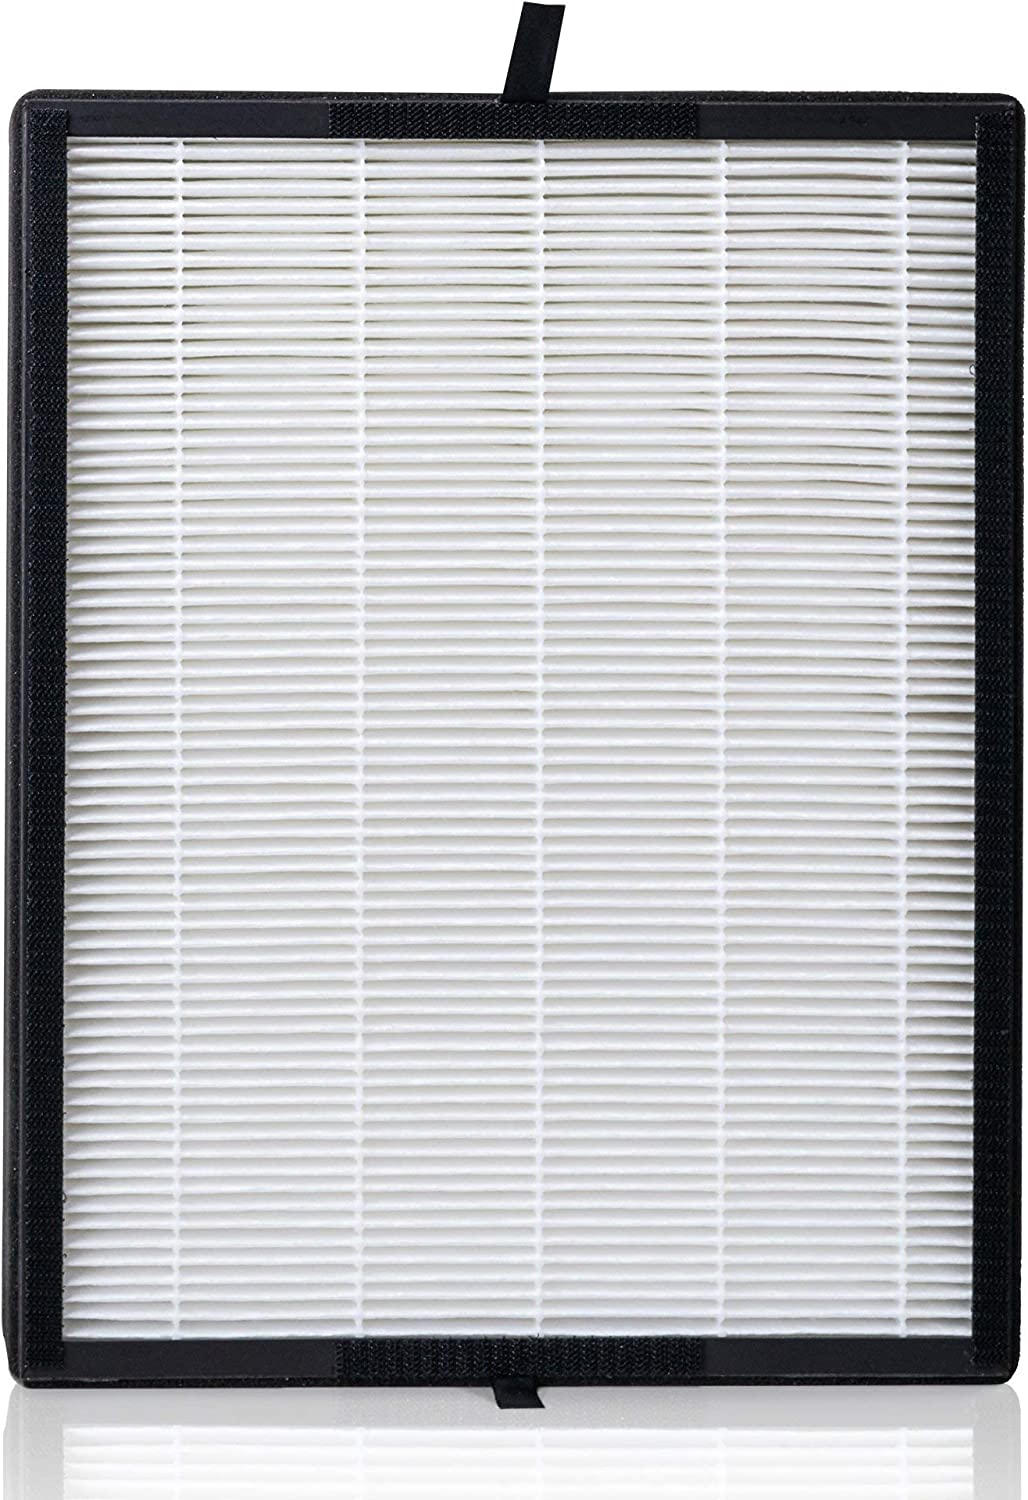 Alen Generic FIT50 Purifier Air Filters Replacement 2 Pre-filters carbon 1